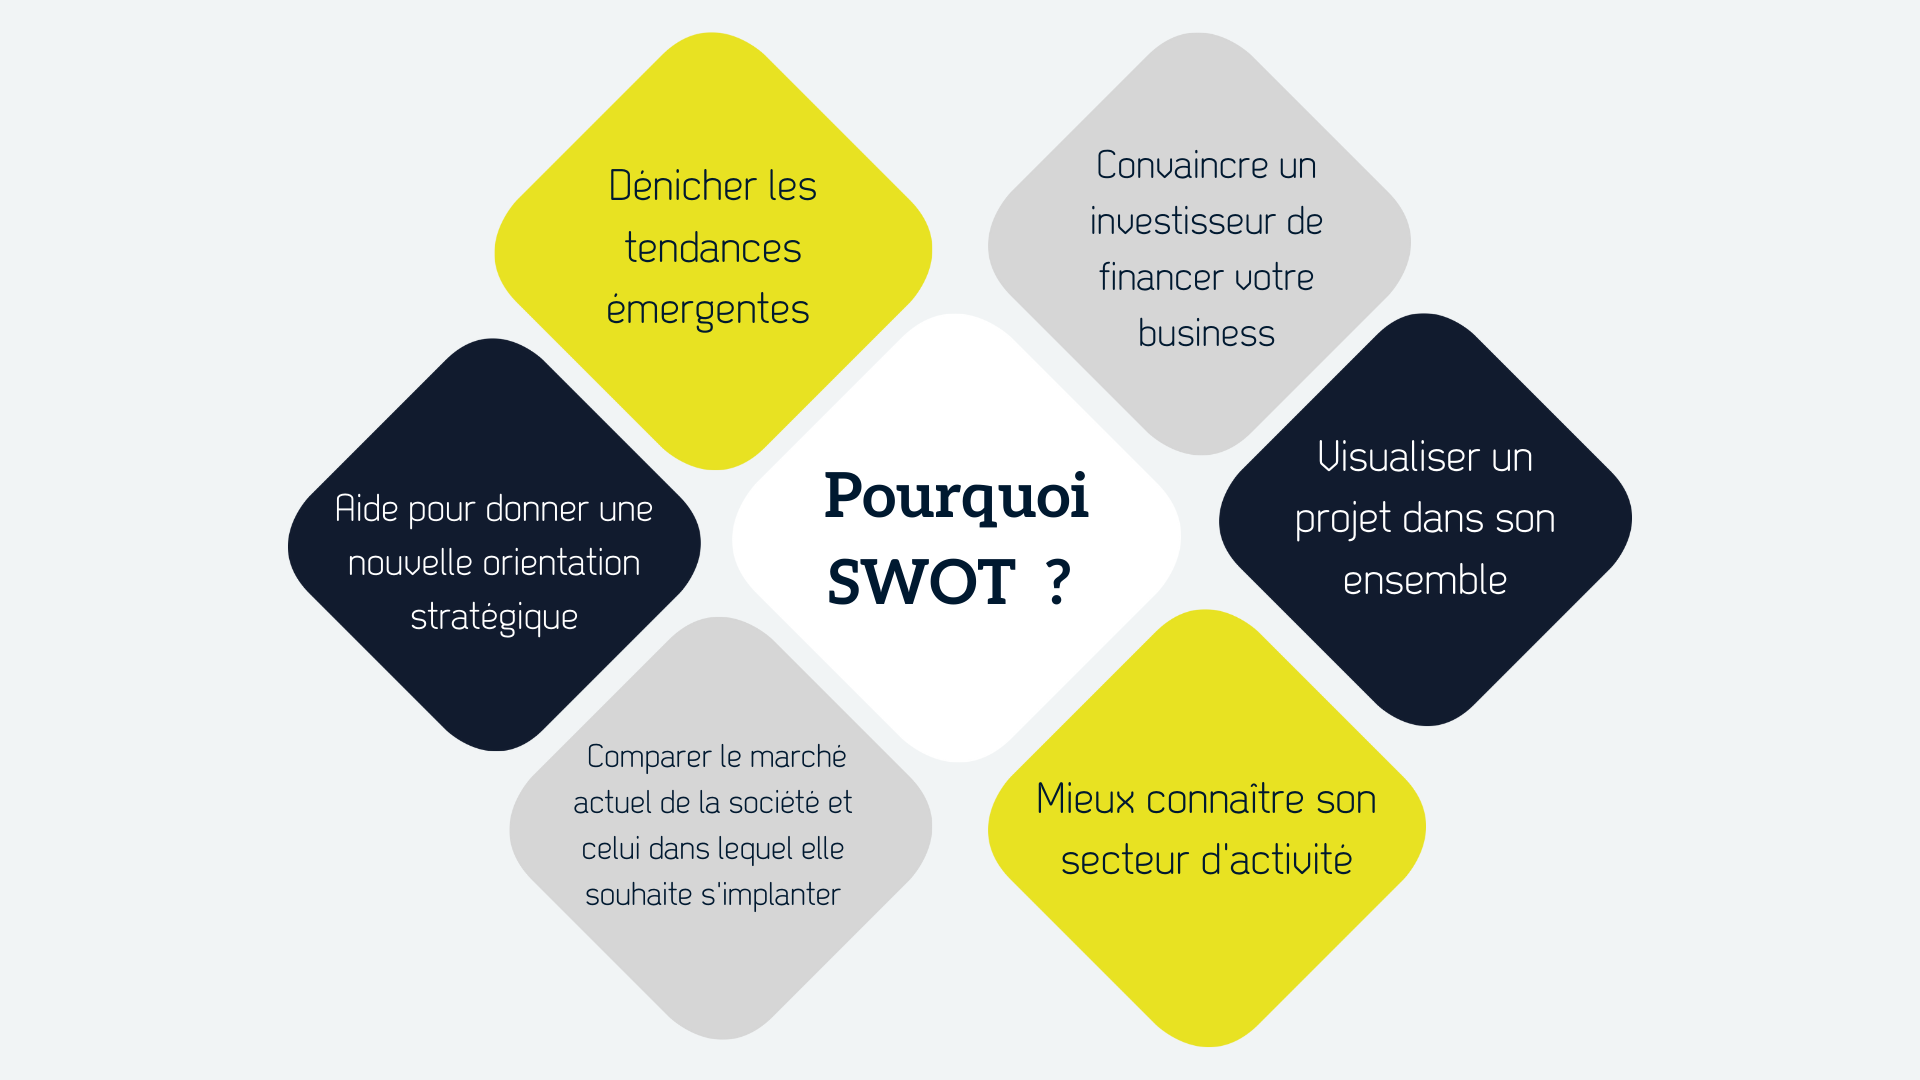 adopter-matrice SWOT-pourquoi